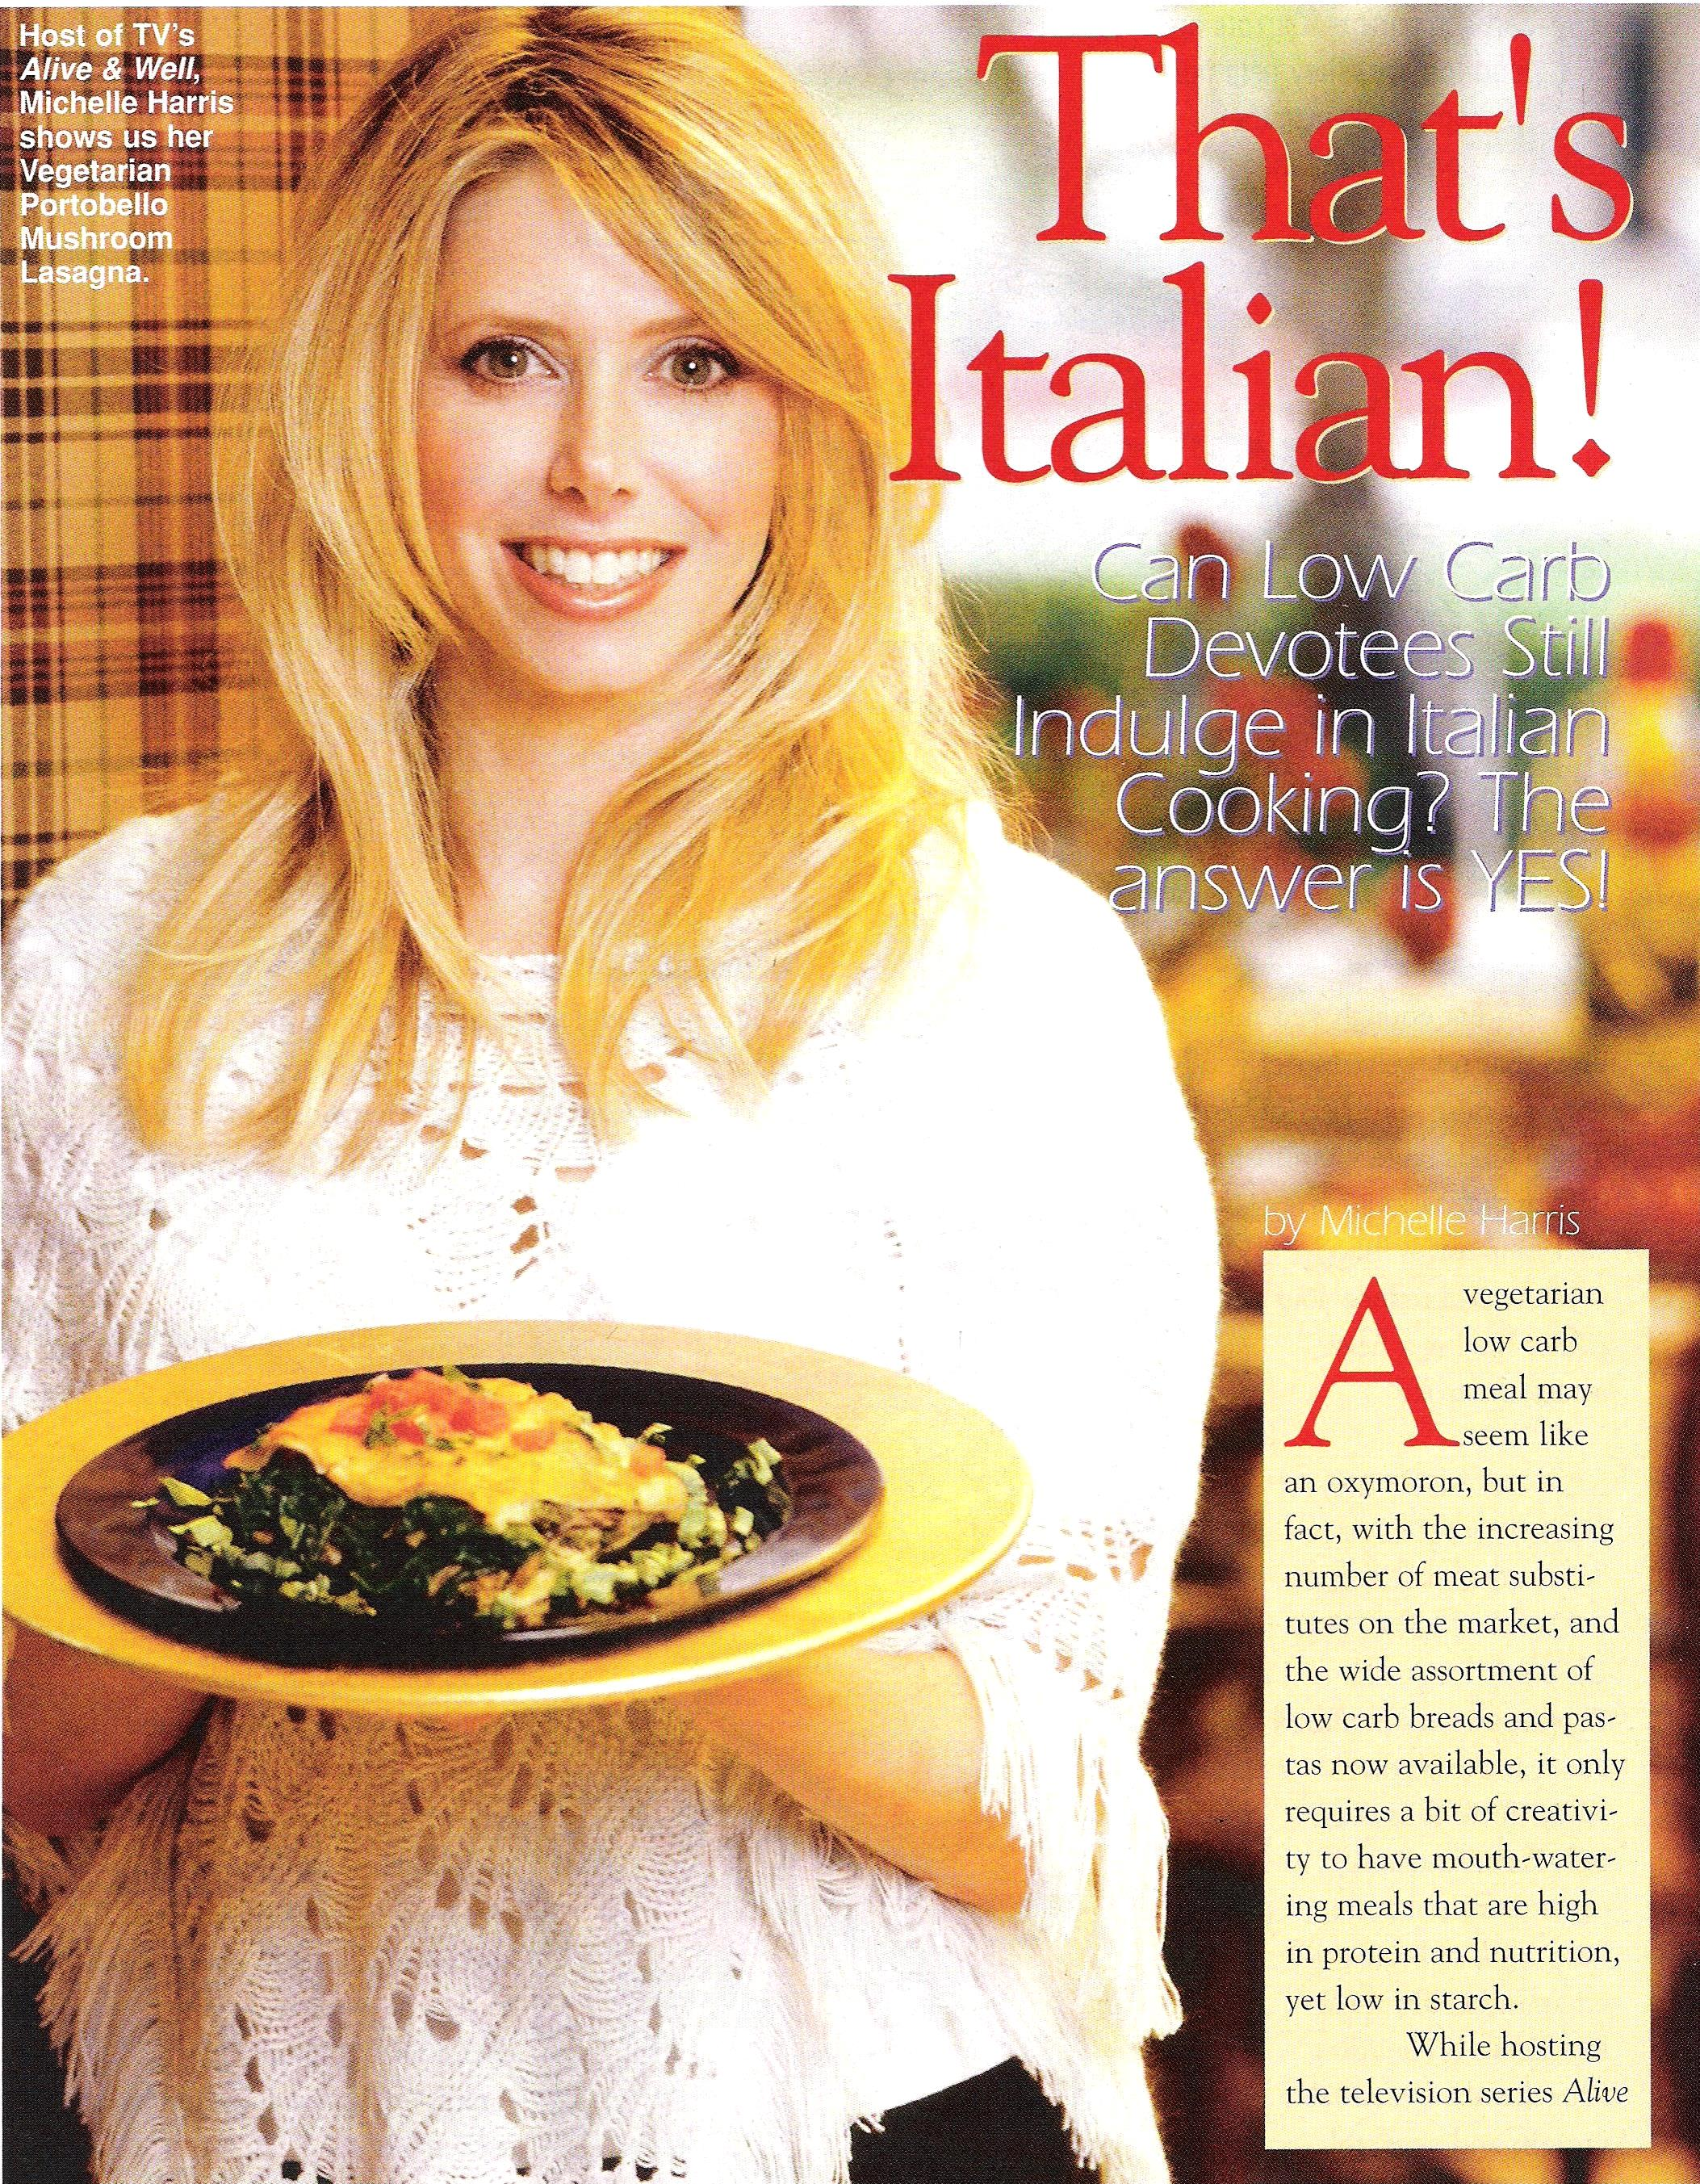 Michelle Harris of Alive and Well TV Show in That's Italian magazine